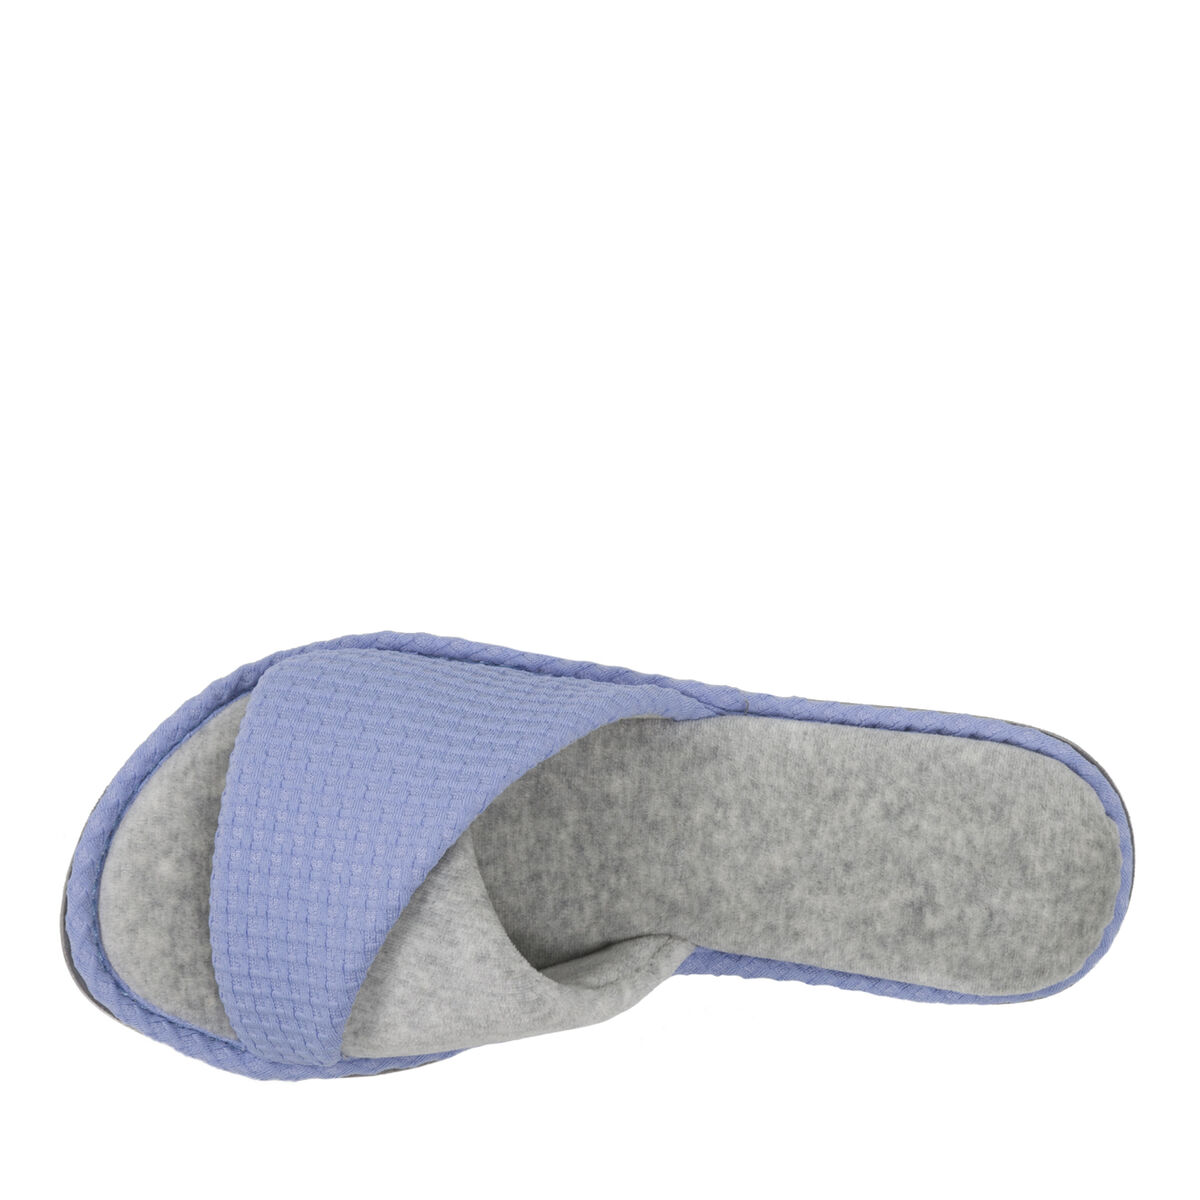 Women's Textured Knit Twist Vamp Slide